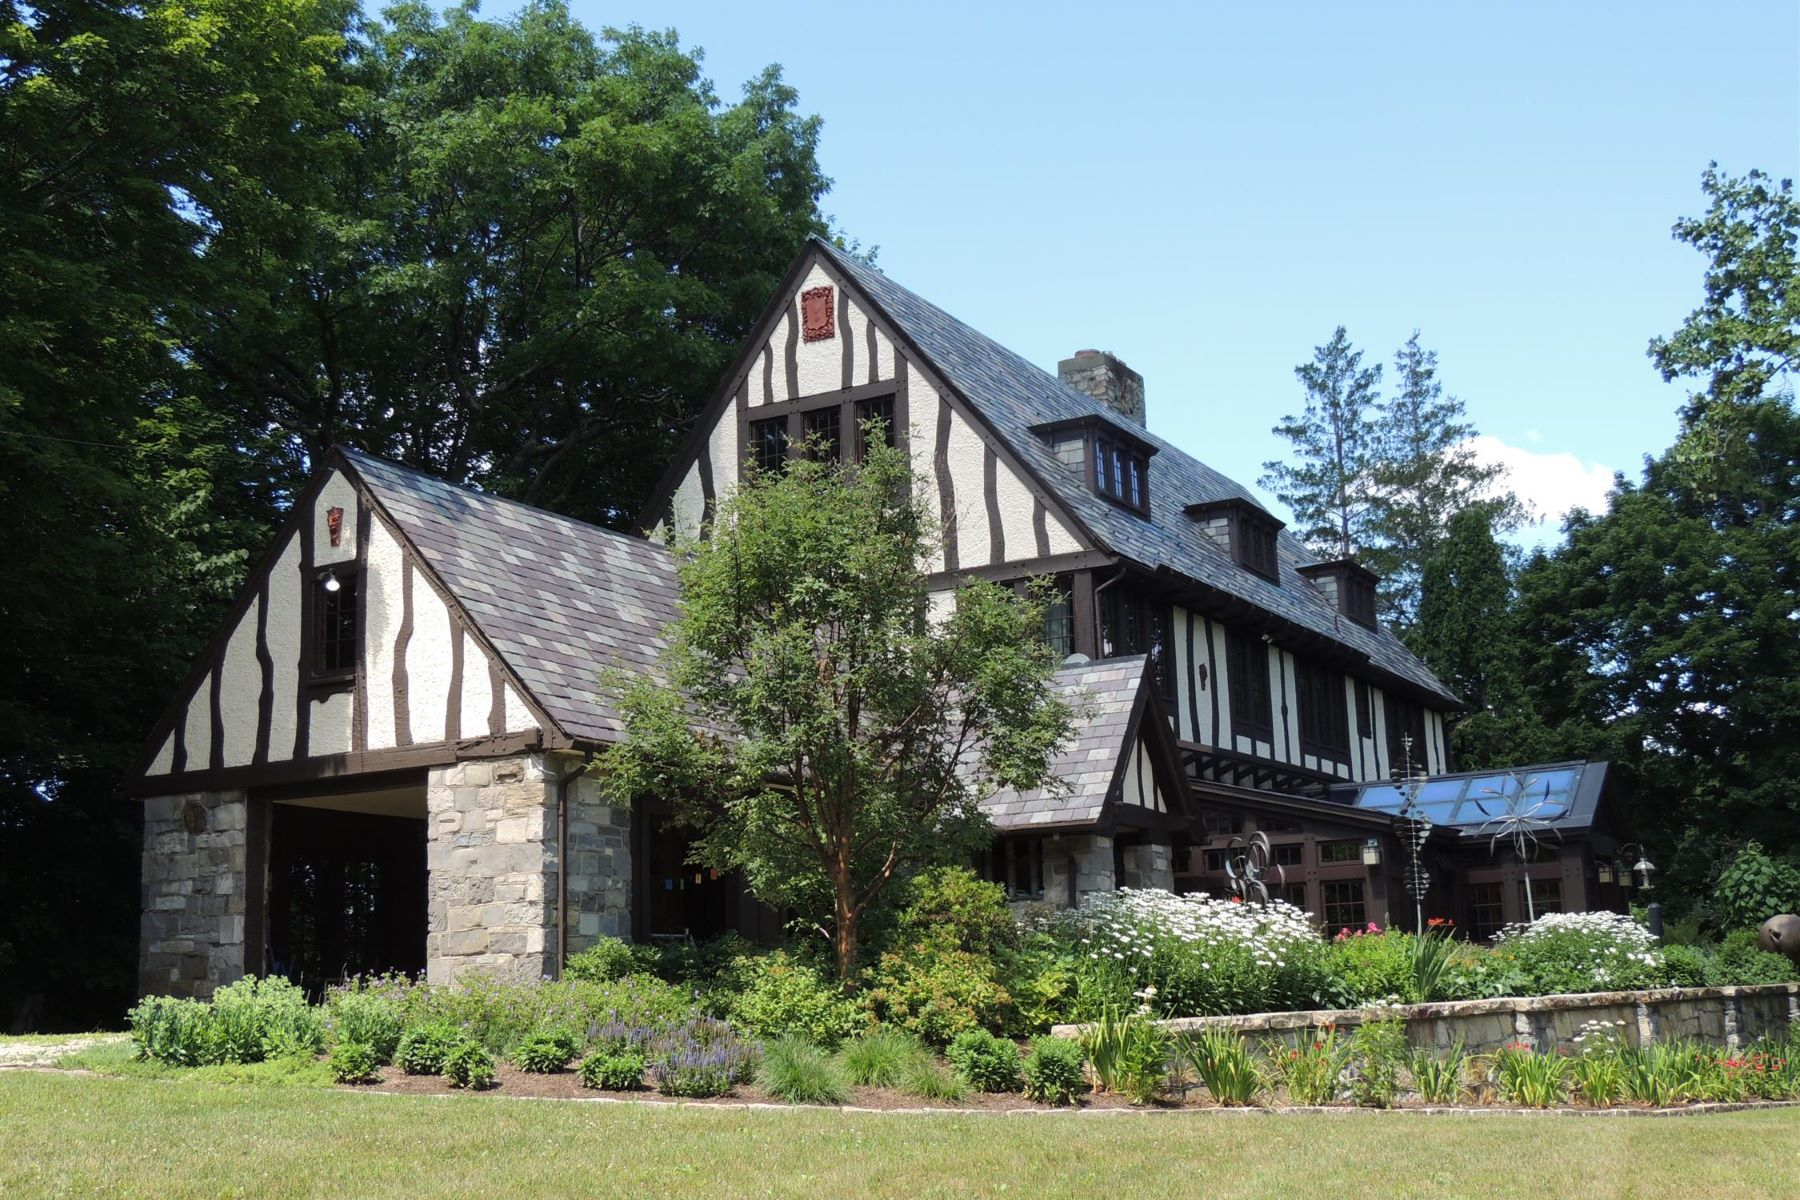 Single Family Home for Sale at Vintage Allure 26 Mansion Drive Copake, New York 12516 United States